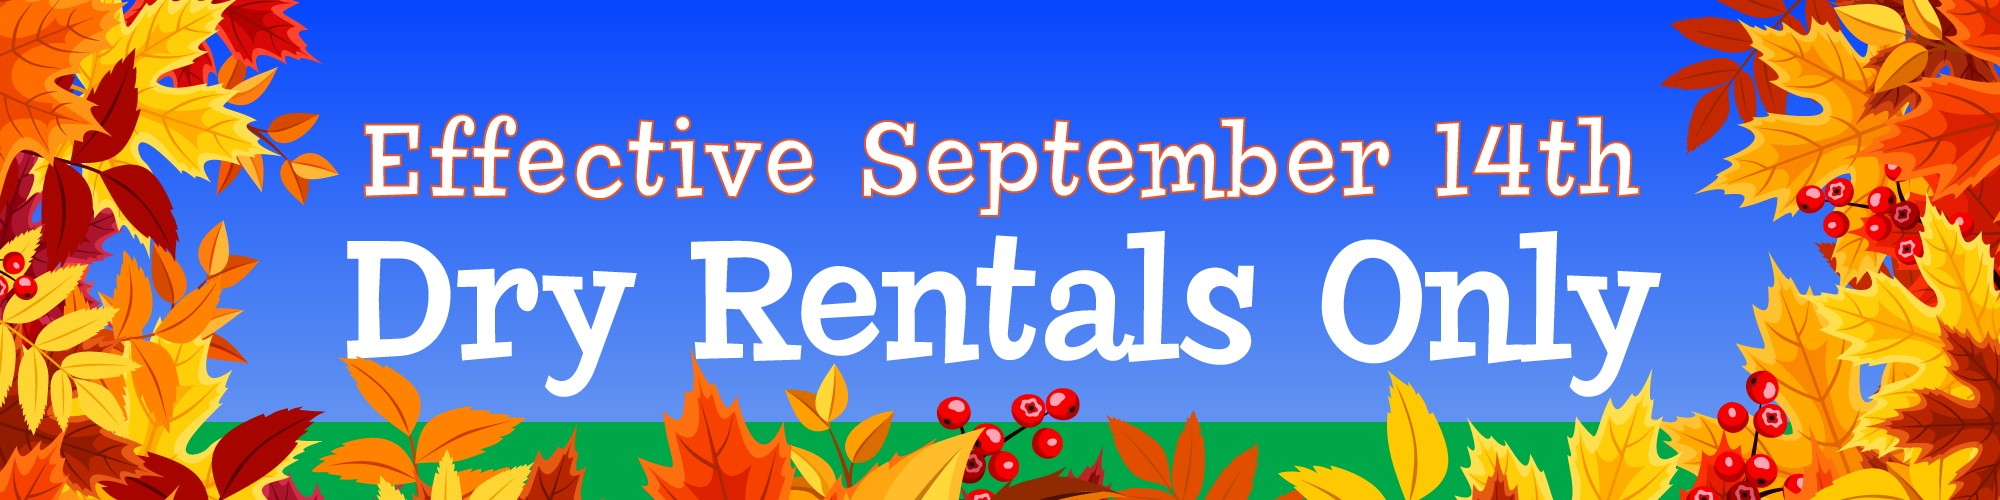 Dry Only Party Rentals Sept 2020-May 2021